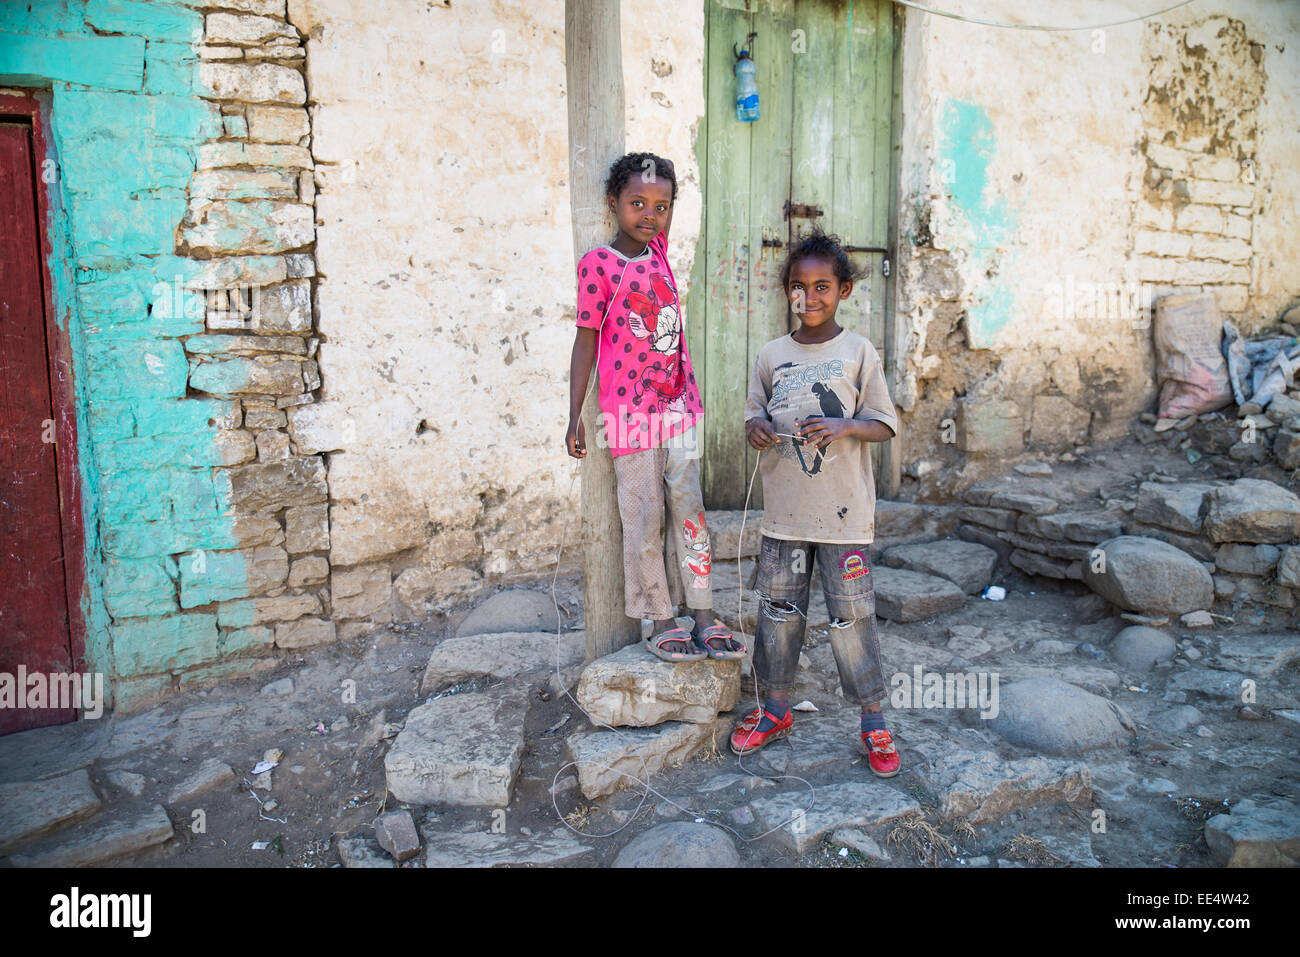 Children in front of the house in Mekele, Ethiopia, Arfika Stock Photo